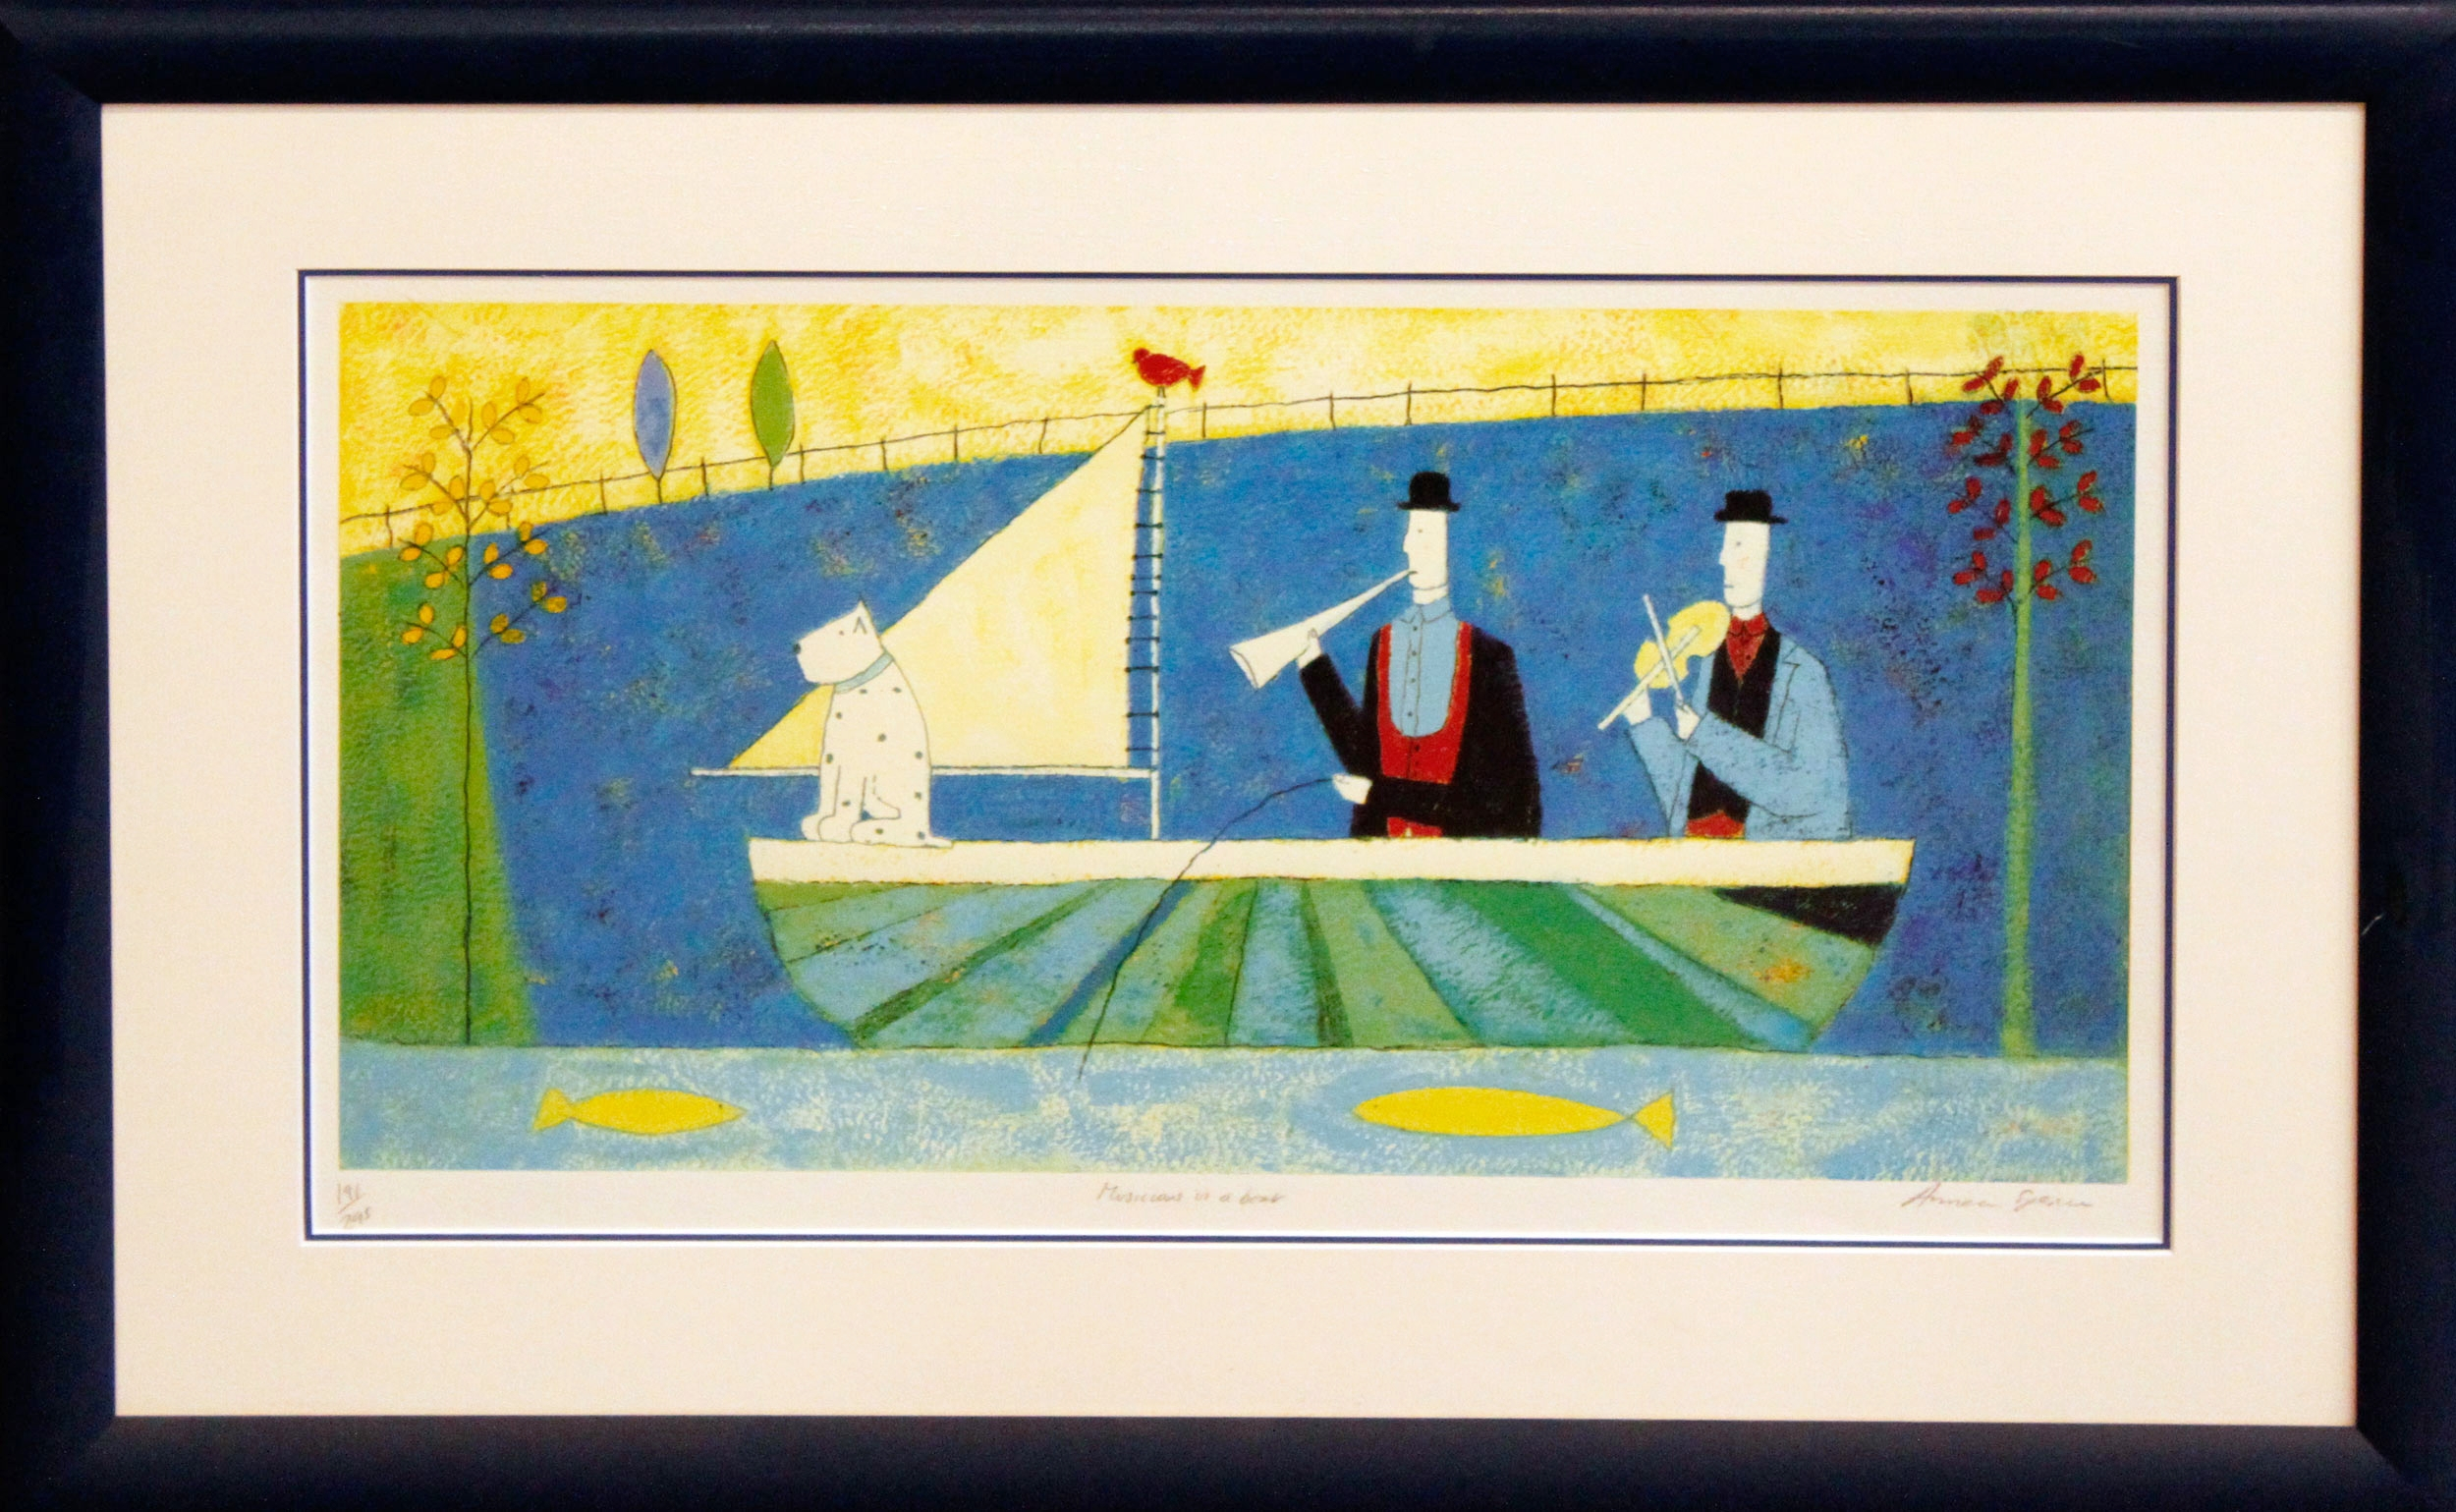 Musicians in a Boat